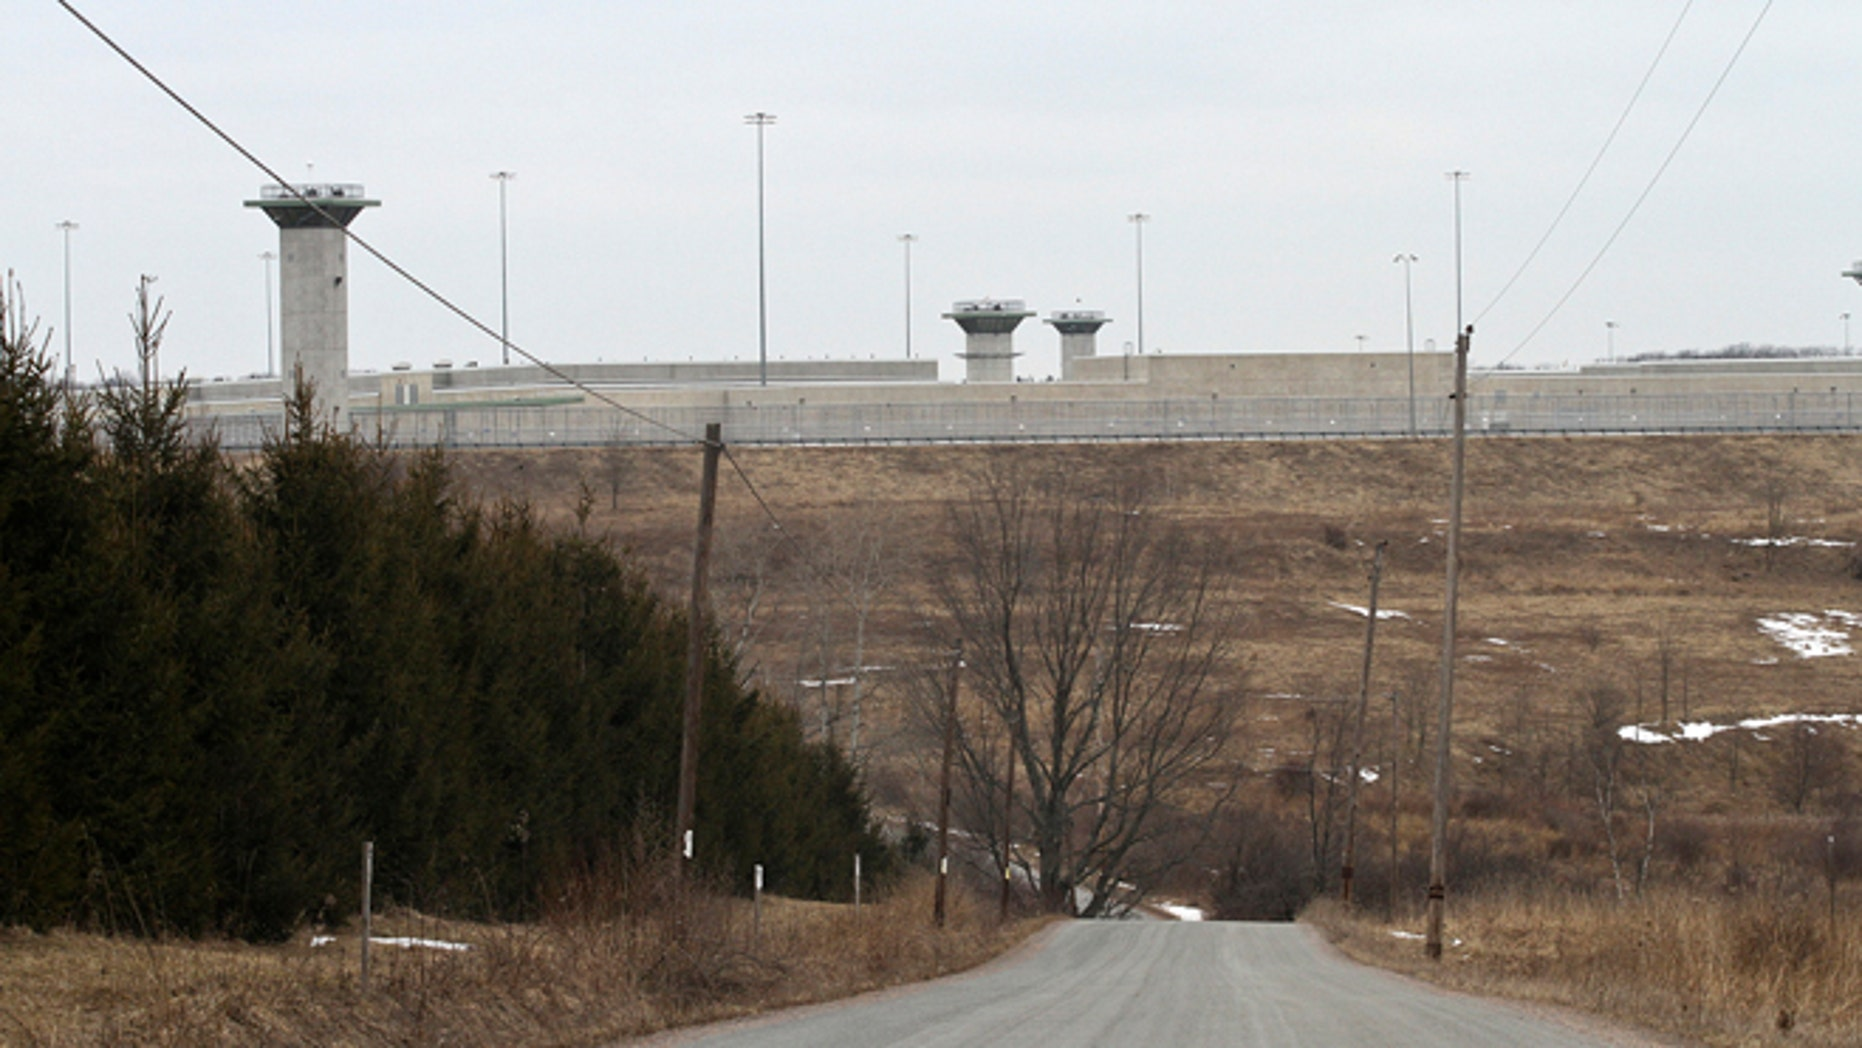 Feb. 26, 2013: This photo shows the U.S. Penitentiary in Canaan, Pa., Wayne County, where Eric Williams, 34, of Nanicoke was killed by an inmate who used a homemade weapon Monday night.